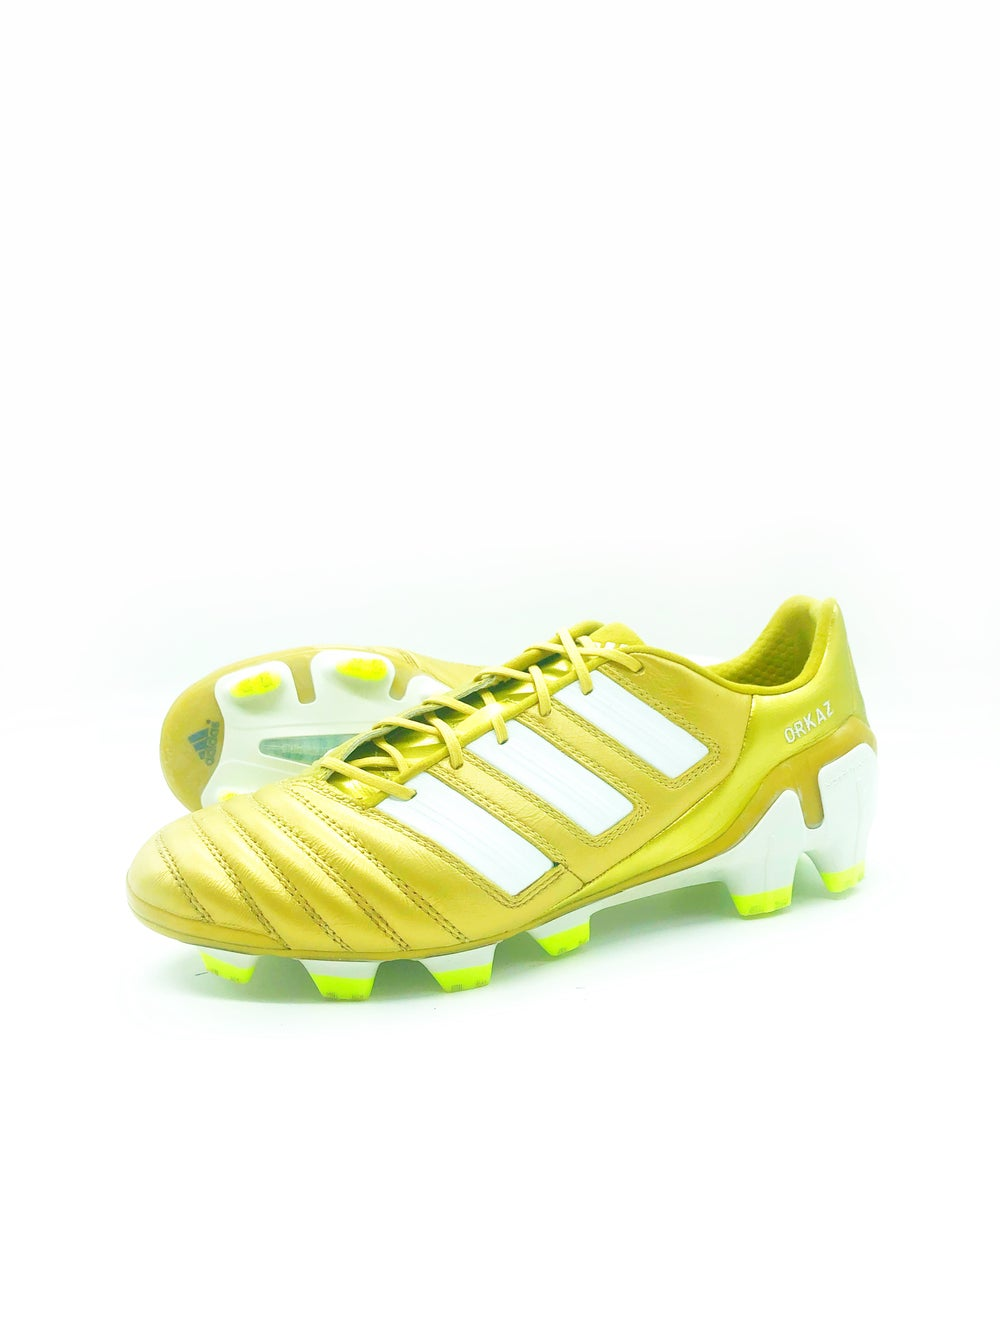 Image of Adidas Predator Adipower GOLD fg